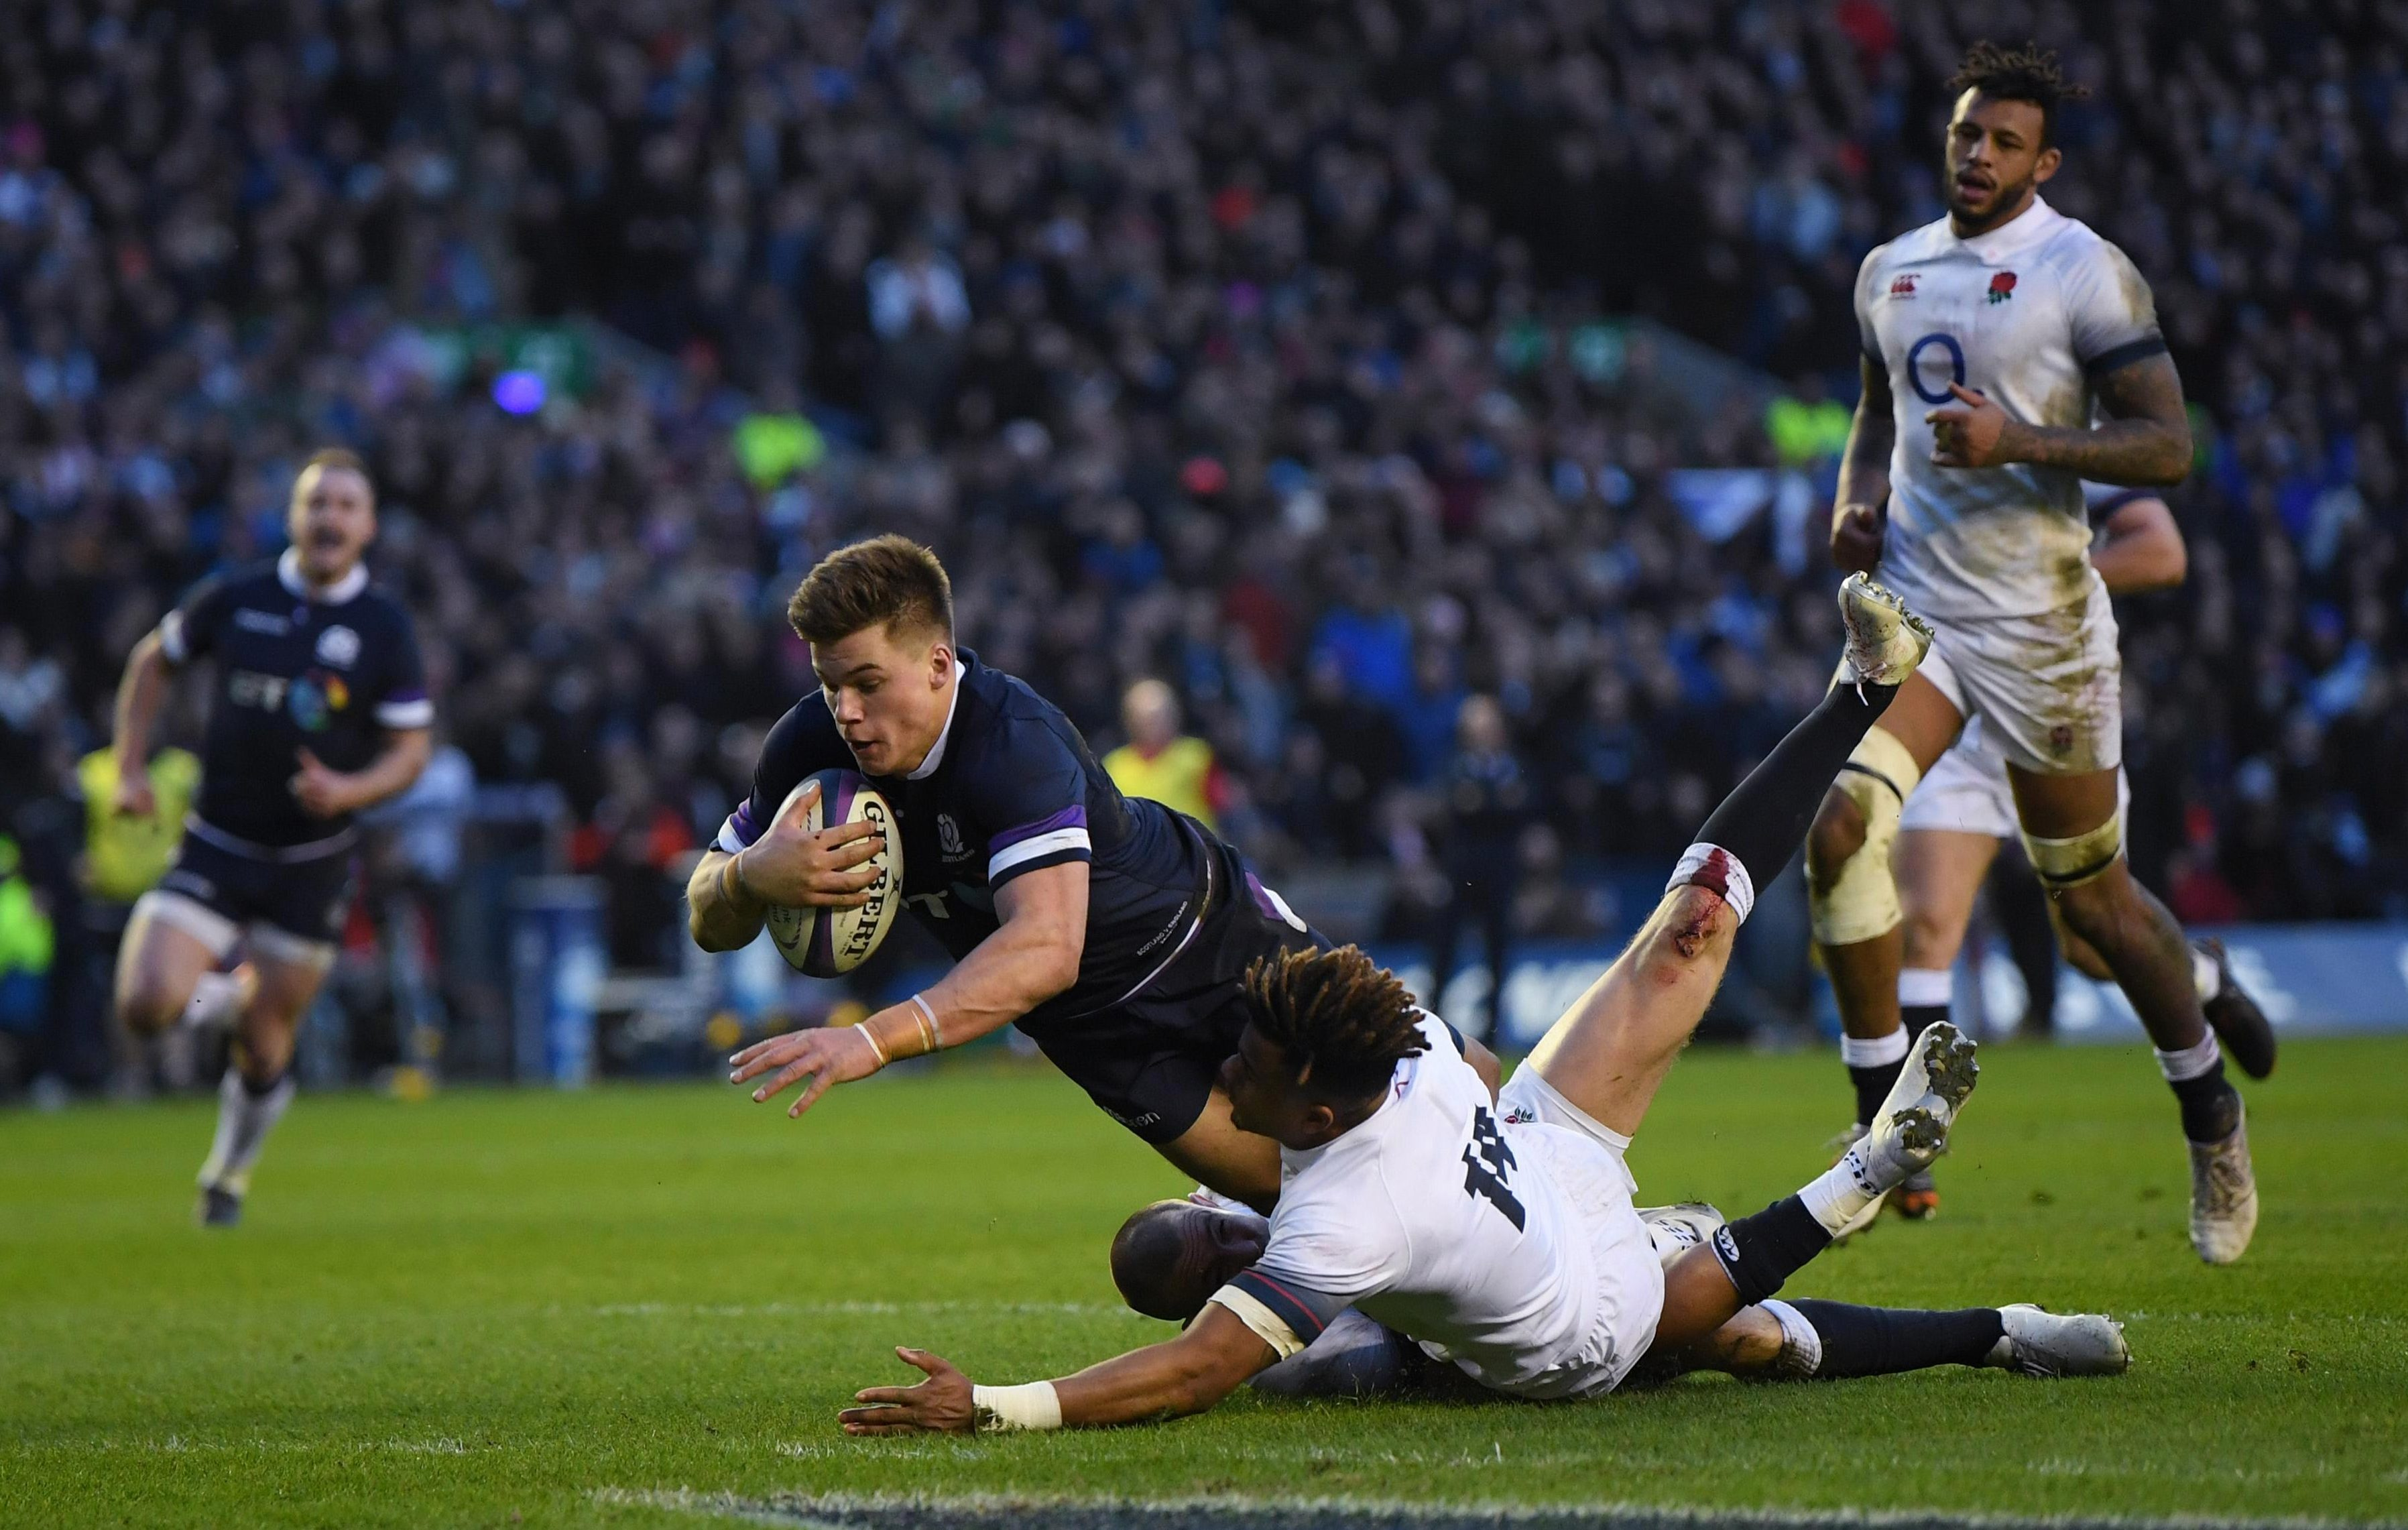 Huw Jones scores Scotland's third try despite the best efforts of England's Anthony Watson